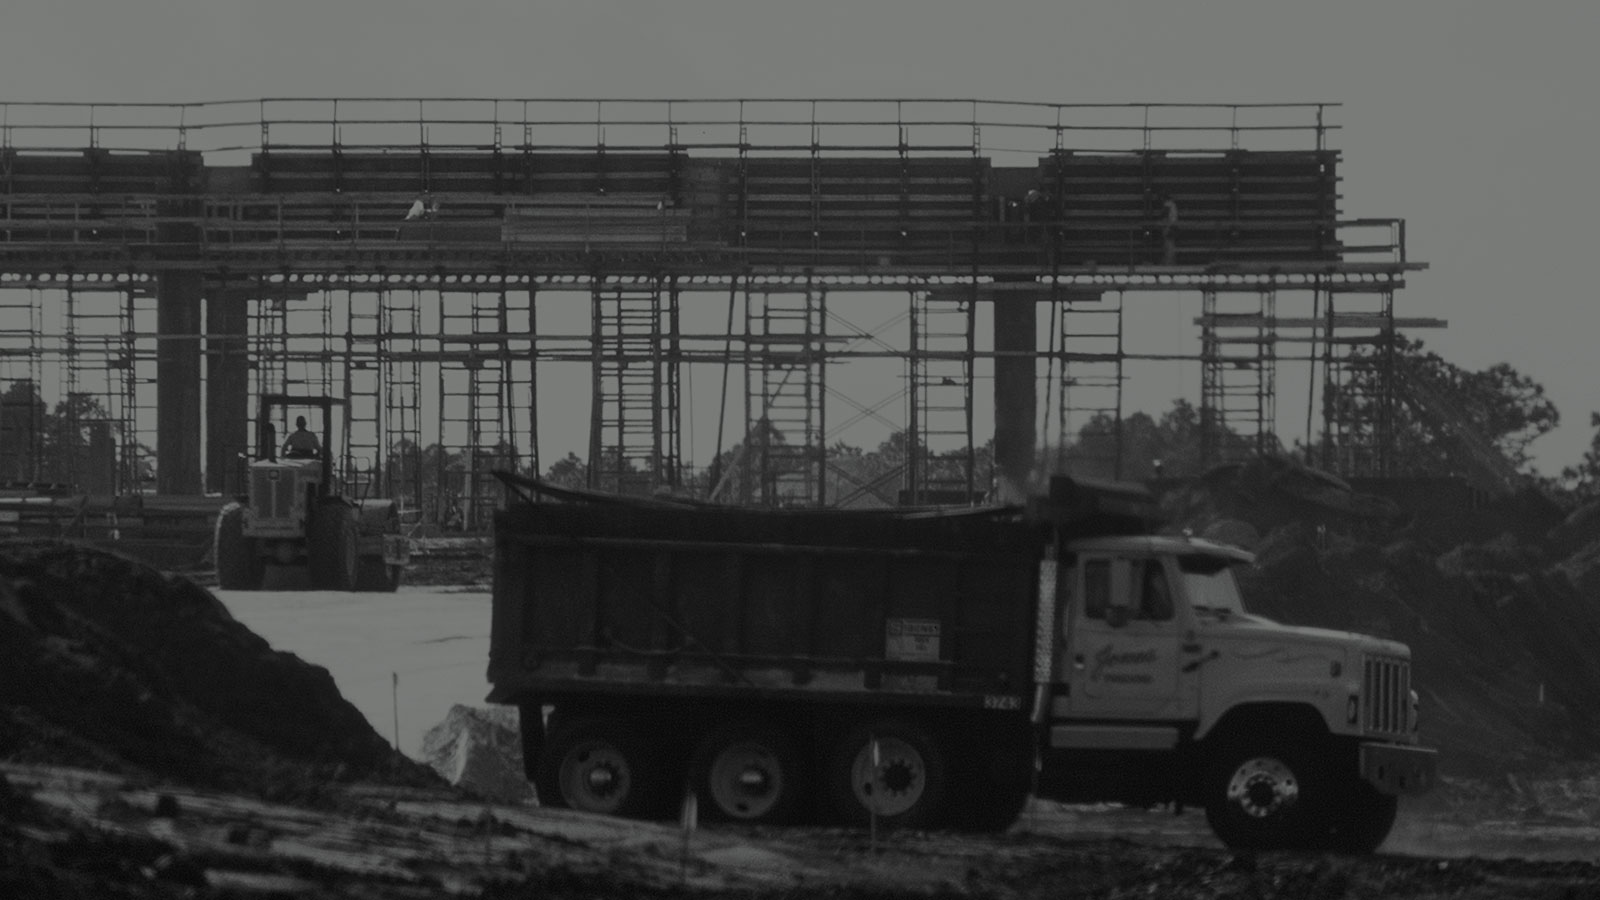 Construction of concrete support pylons for Central Florida Expressway toll road 417